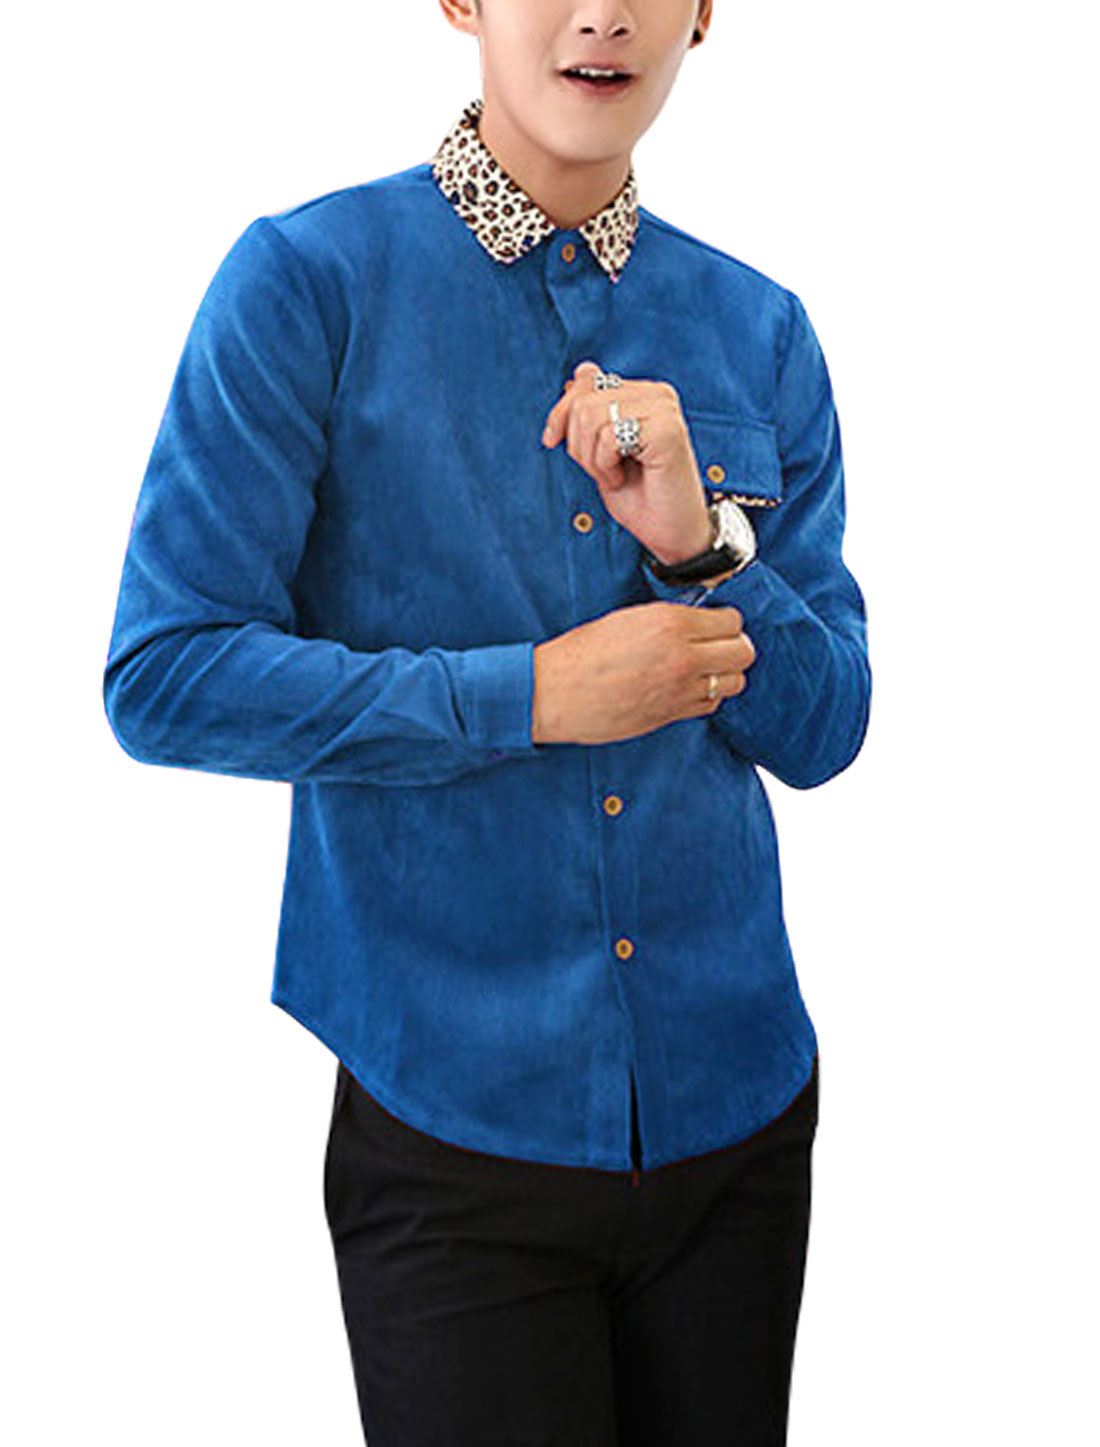 Men Single Breasted Button Cuffs Leisure Corduroy Shirt Royal Blue M